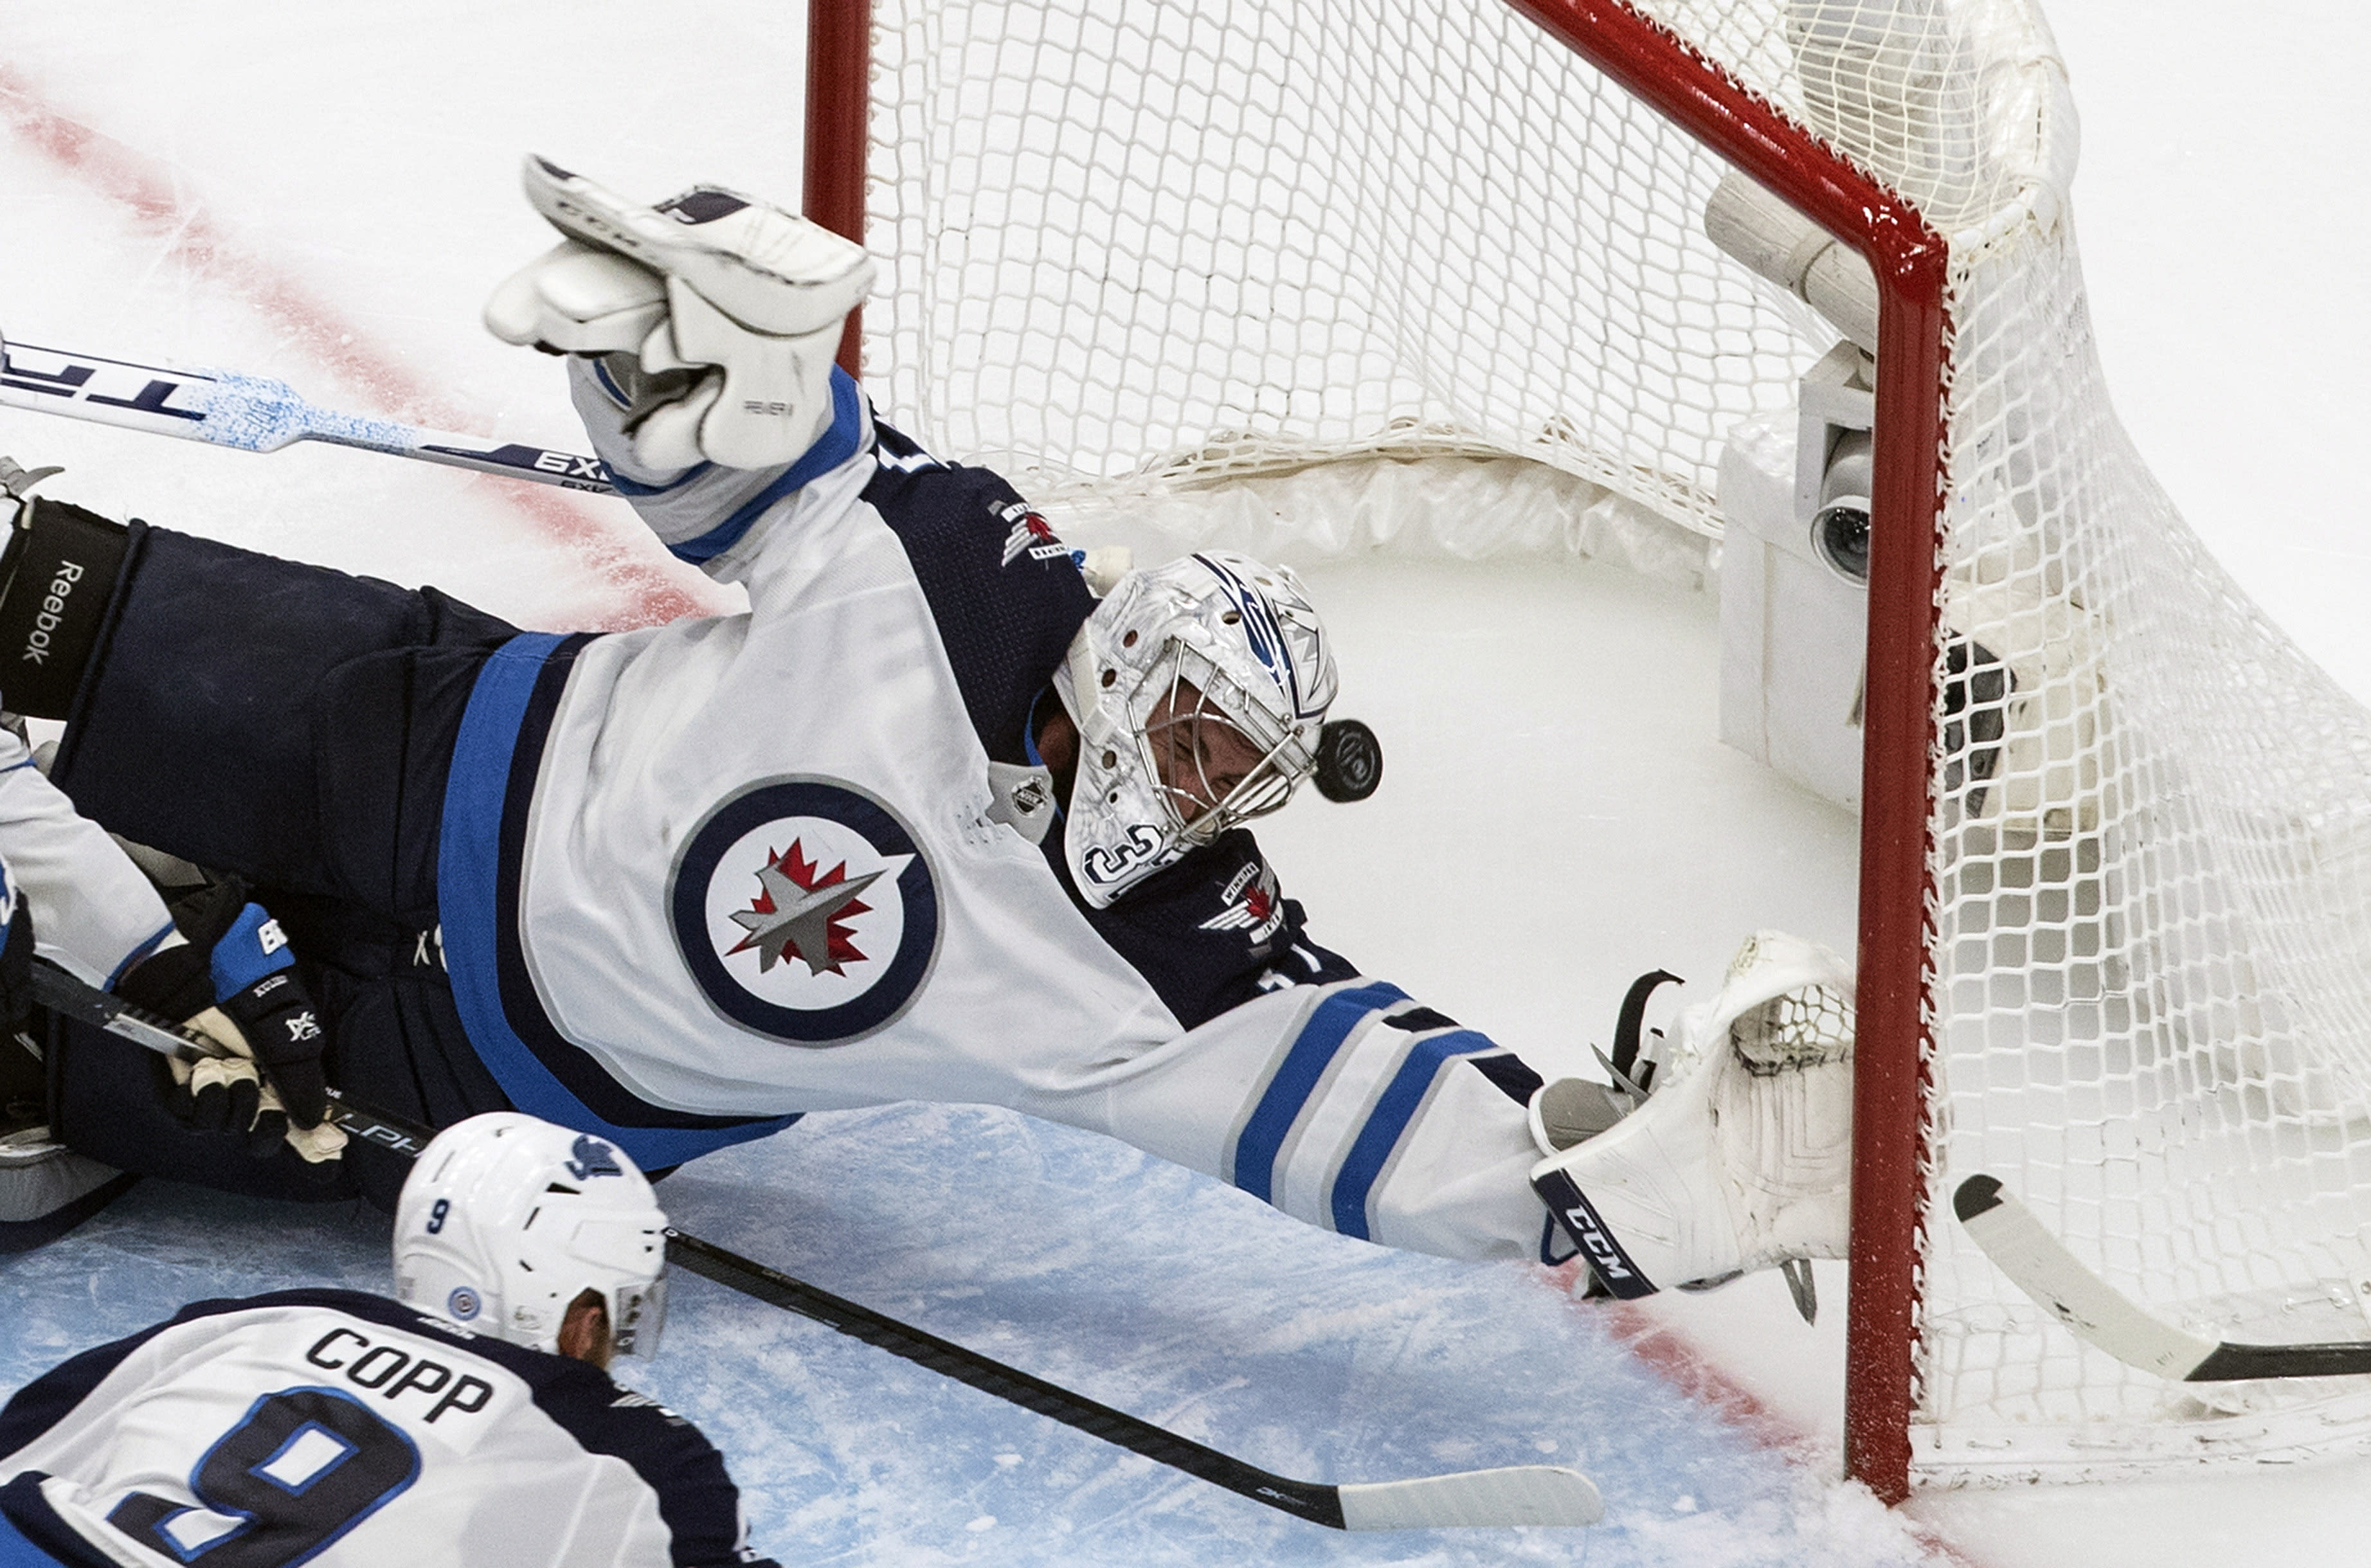 Winnipeg Jets goalie Connor Hellebuyck (37) is scored on by Calgary Flames' Johnny Gaudreau as Jets' Andrew Copp defends during the second period of an NHL hockey playoff game Saturday, Aug. 1, 2020 in Edmonton, Alberta. (Jason Franson/The Canadian Press via AP)